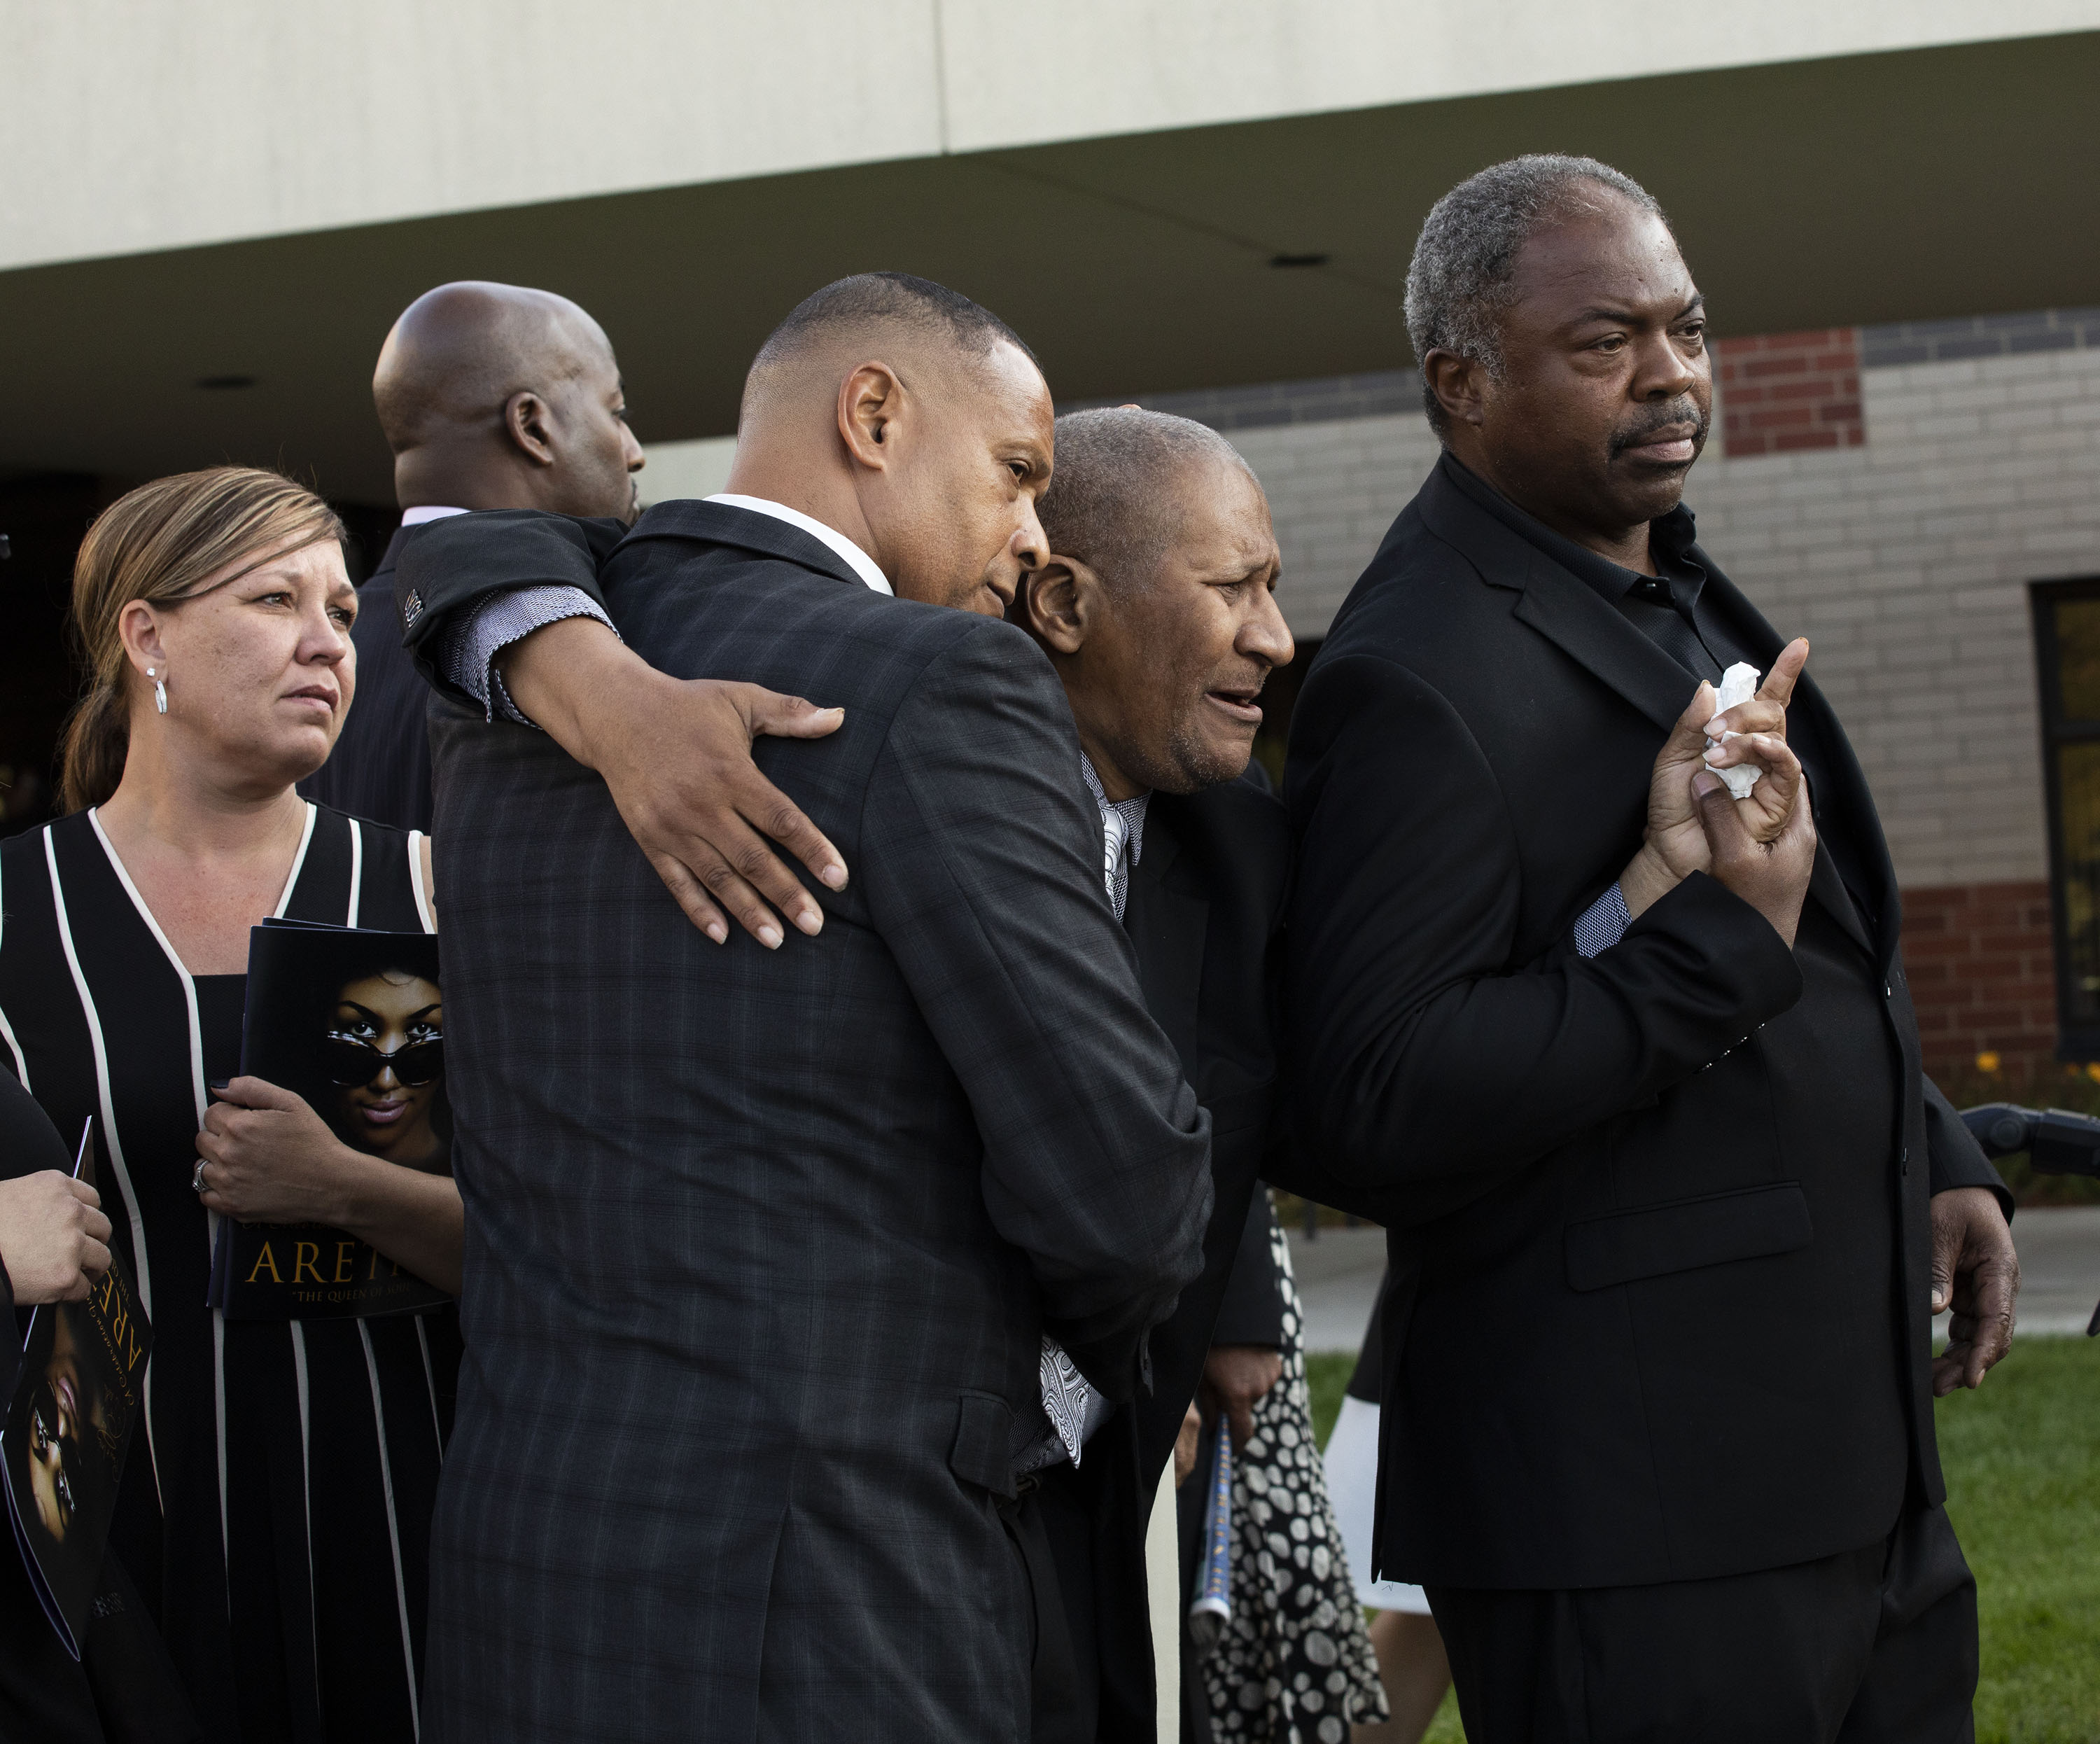 Aretha Franklin's eldest son, Clarence Franklin, pictured at the center of two men mourns the death of his mother outside Greater Grace Temple following her funeral on August 31, 2018 in Detroit, Michigan. | Source: Getty Images